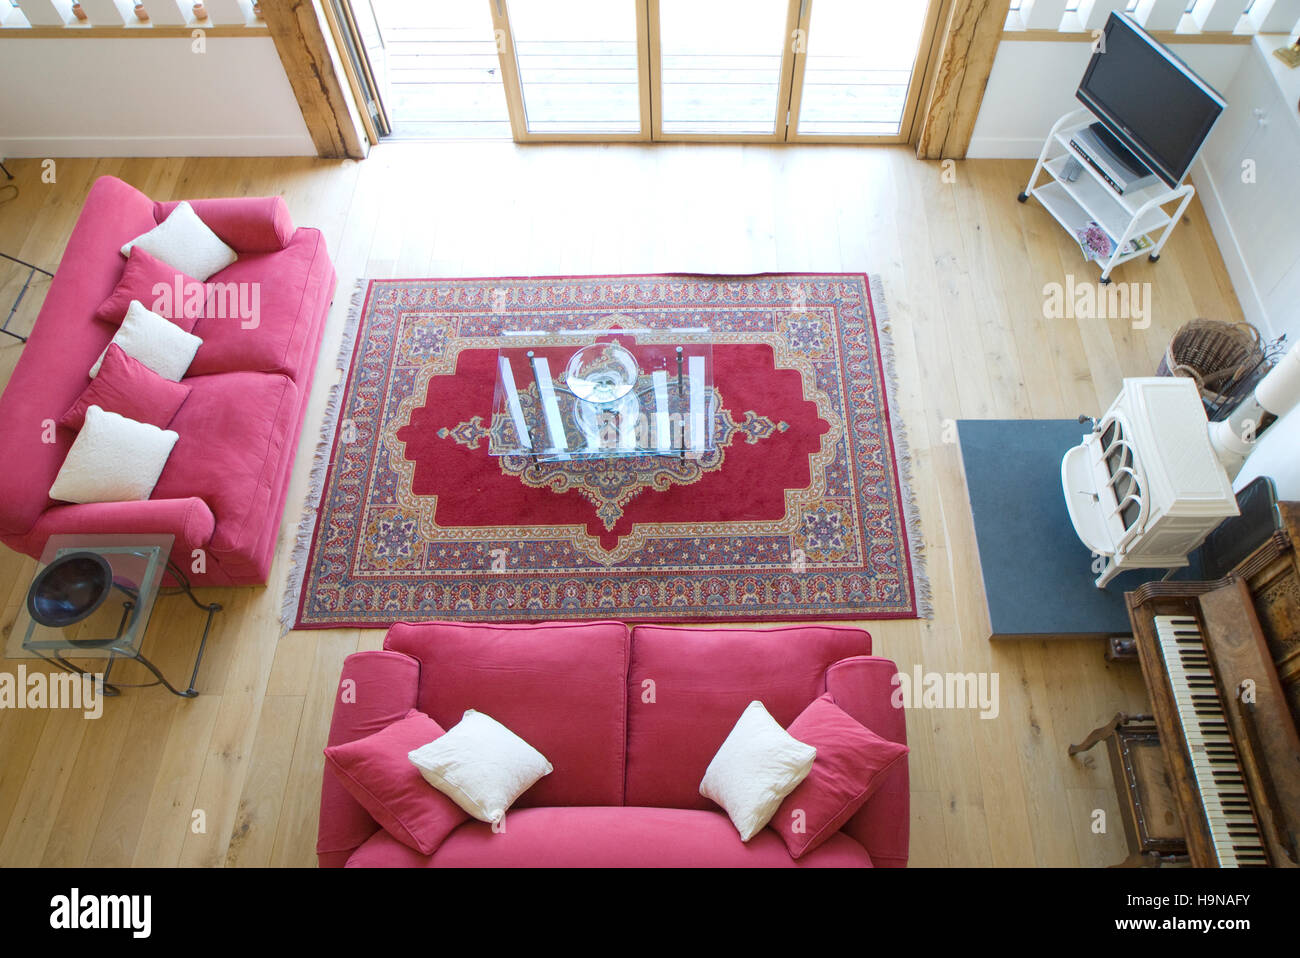 Living room with sofas, from above, with glazed doors. - Stock Image